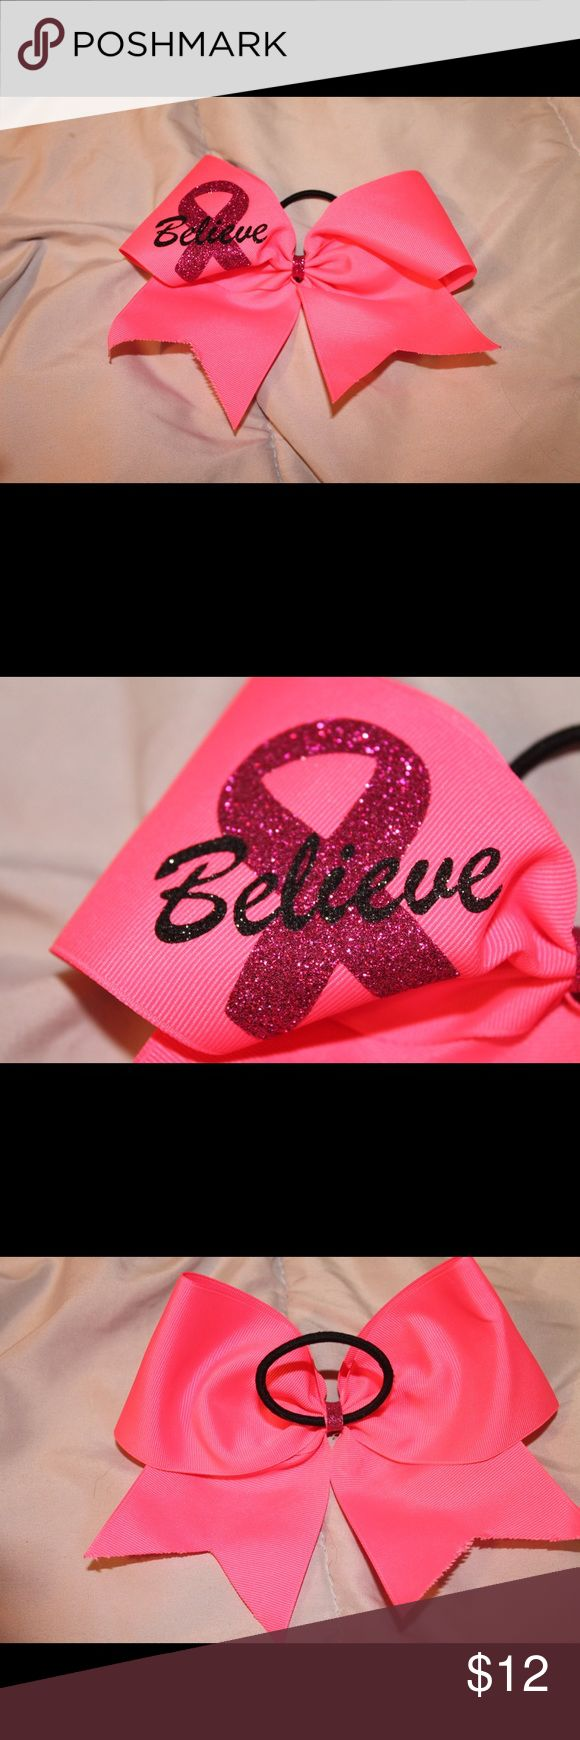 Breast Cancer Awareness Cheer Bow! Hot pink cheer bow for breast cancer awareness month. Sparkly pink ribbon on the left side with the words believe. Bow attached to a pony tail. Only worn once for about two hours! Make an offer:) Other